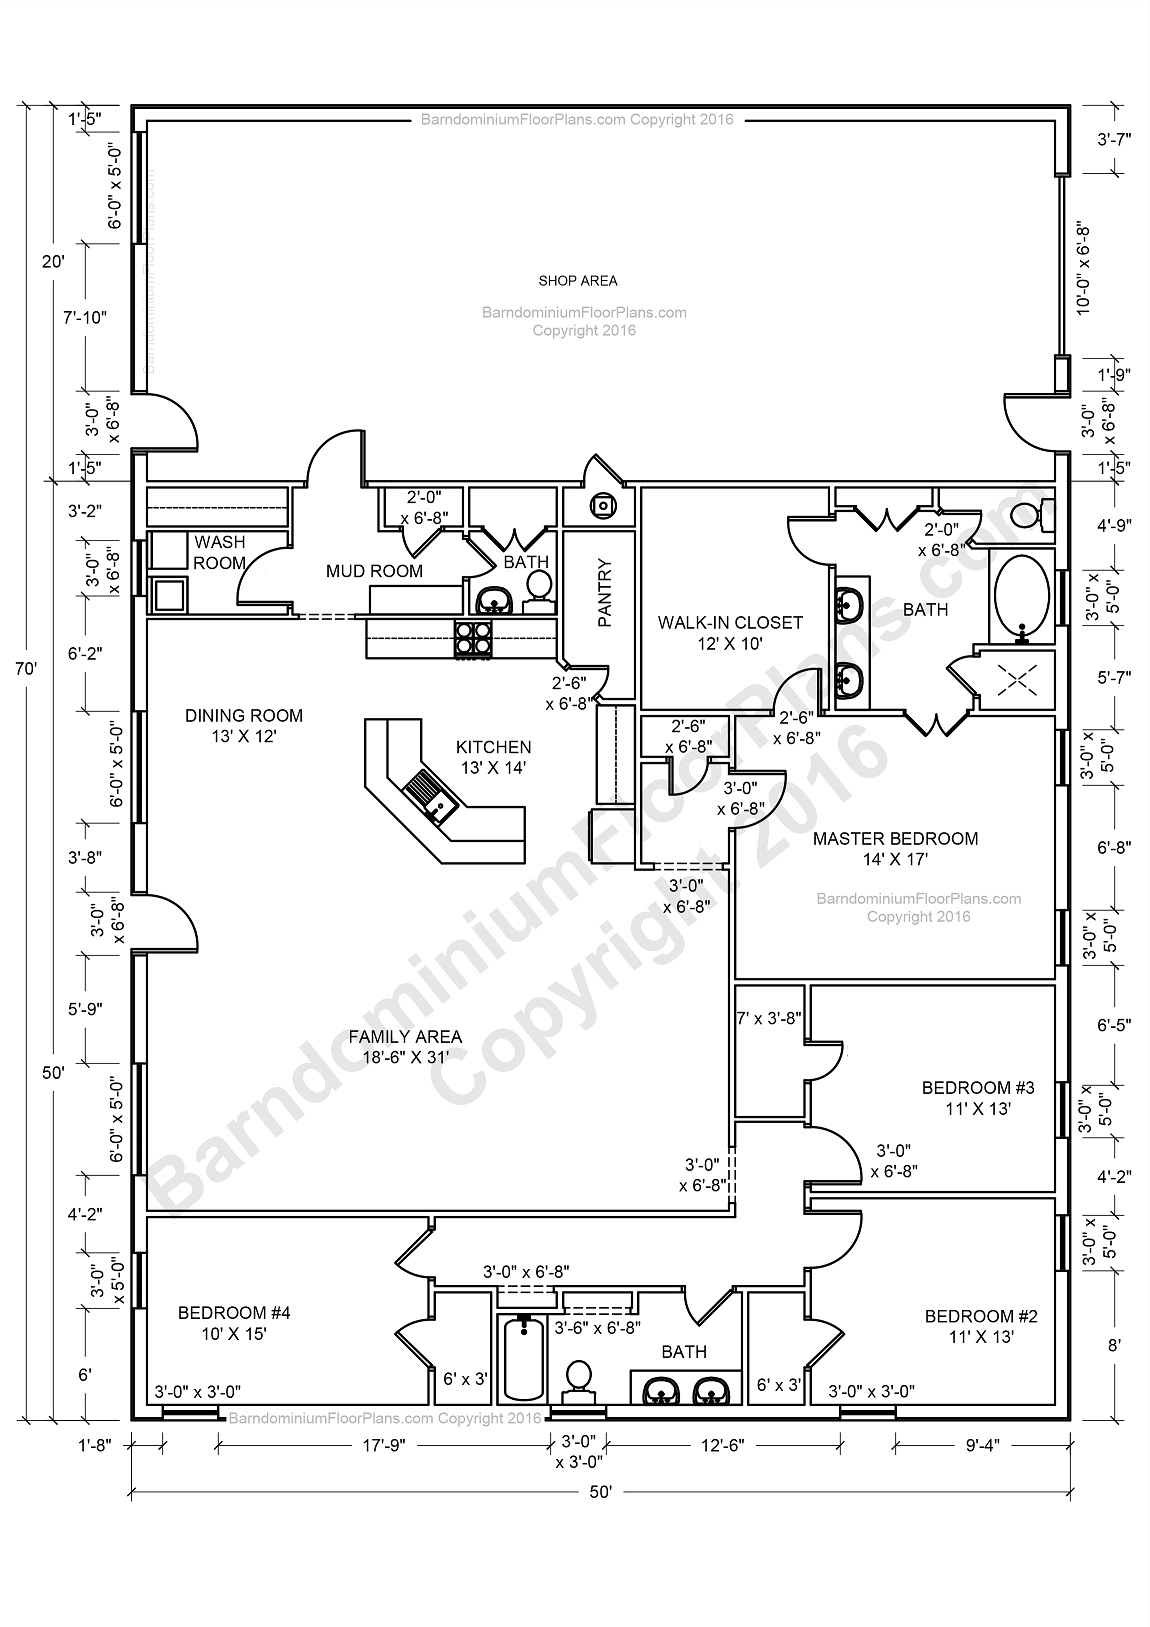 Barndominium floor plans barndominium floor plans 1 800 for House plans for metal homes